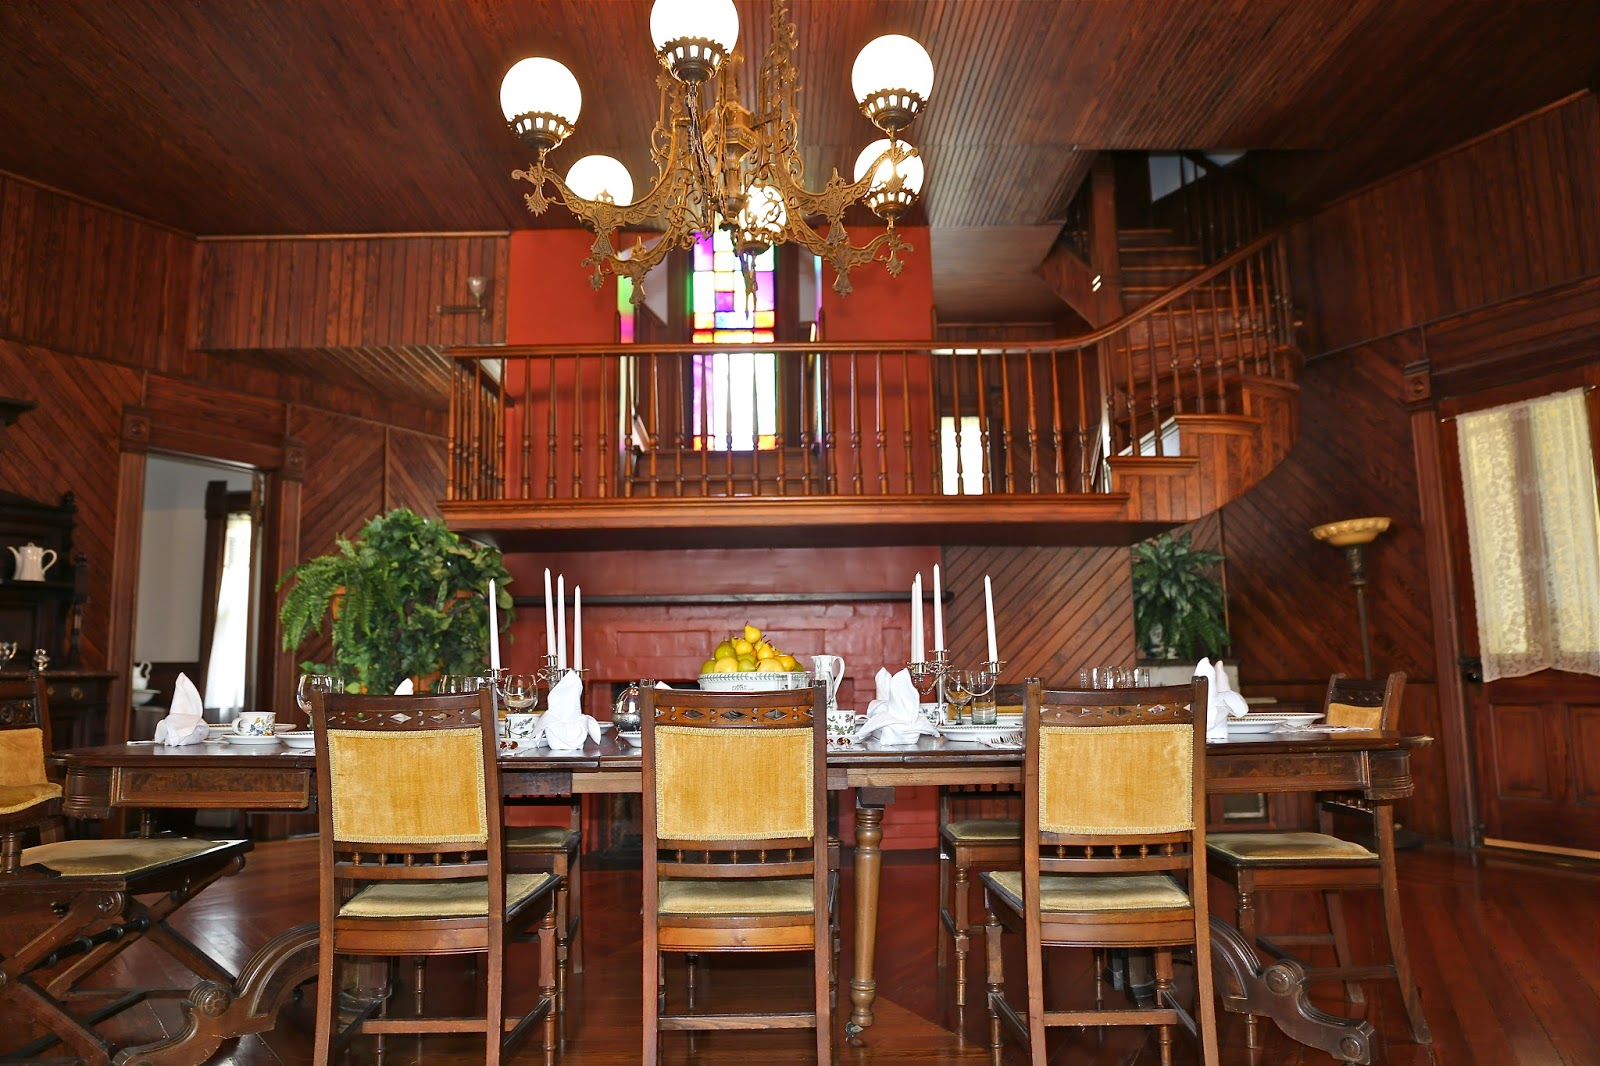 View of the dining room and the double flue chimney, with the staircase running between them